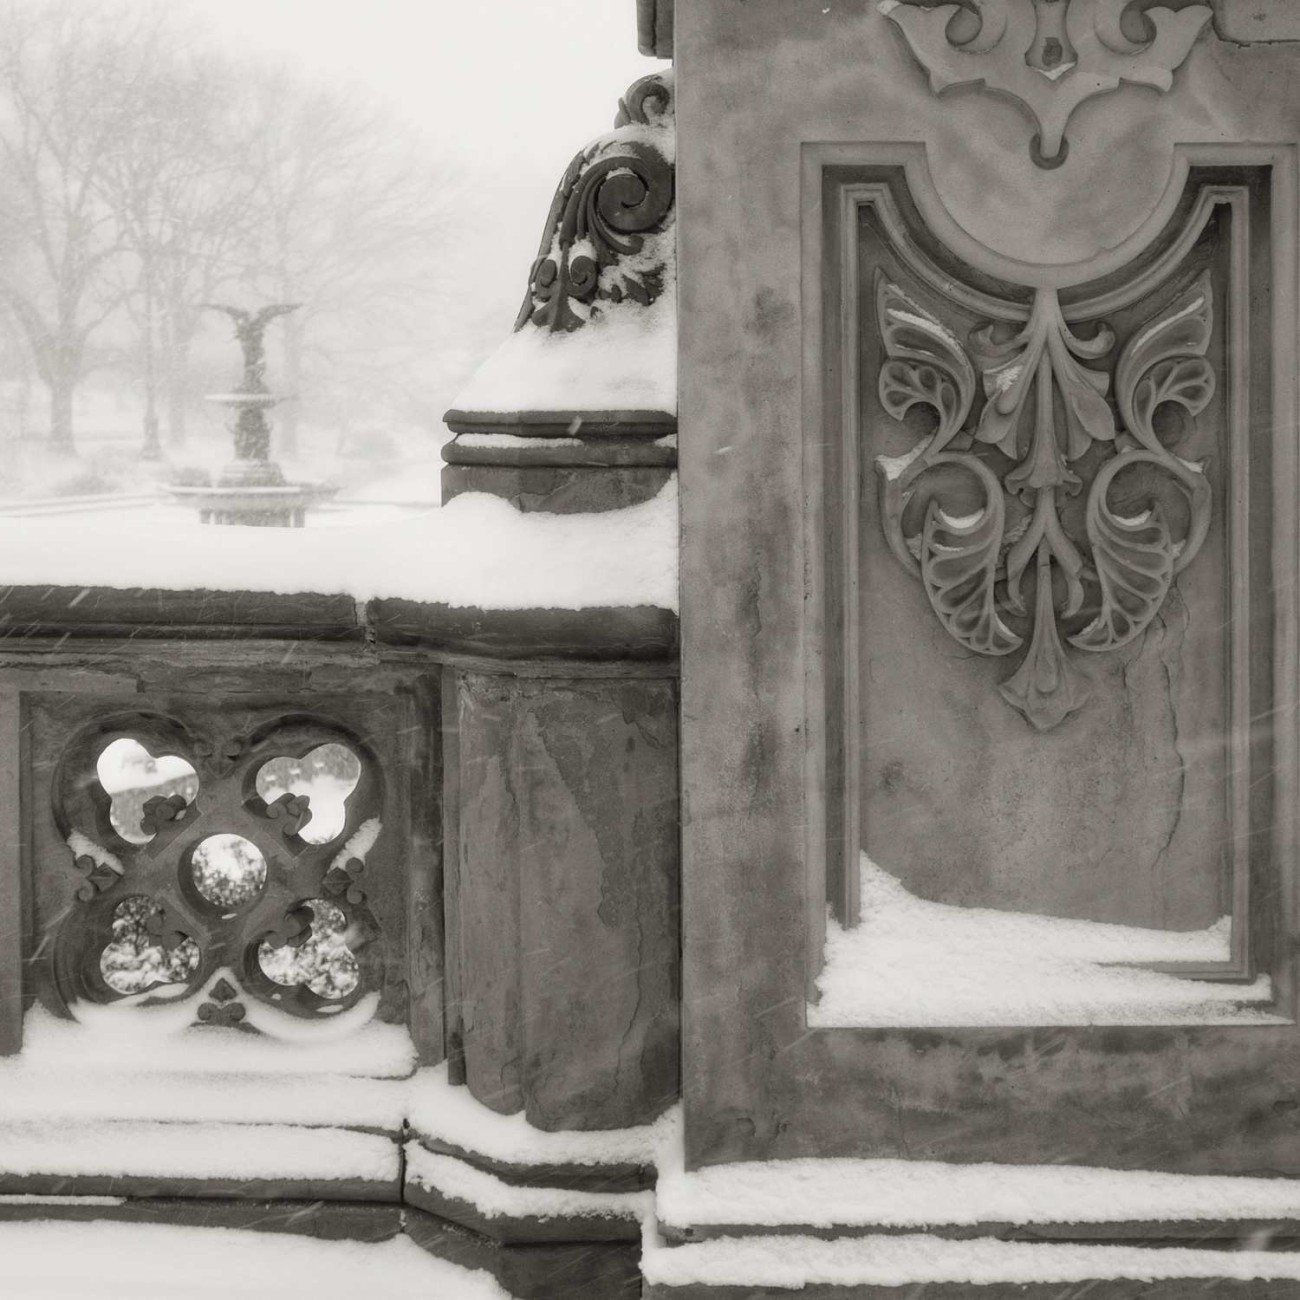 Bethesda Fountain in snow, Central Park, New York, 2014